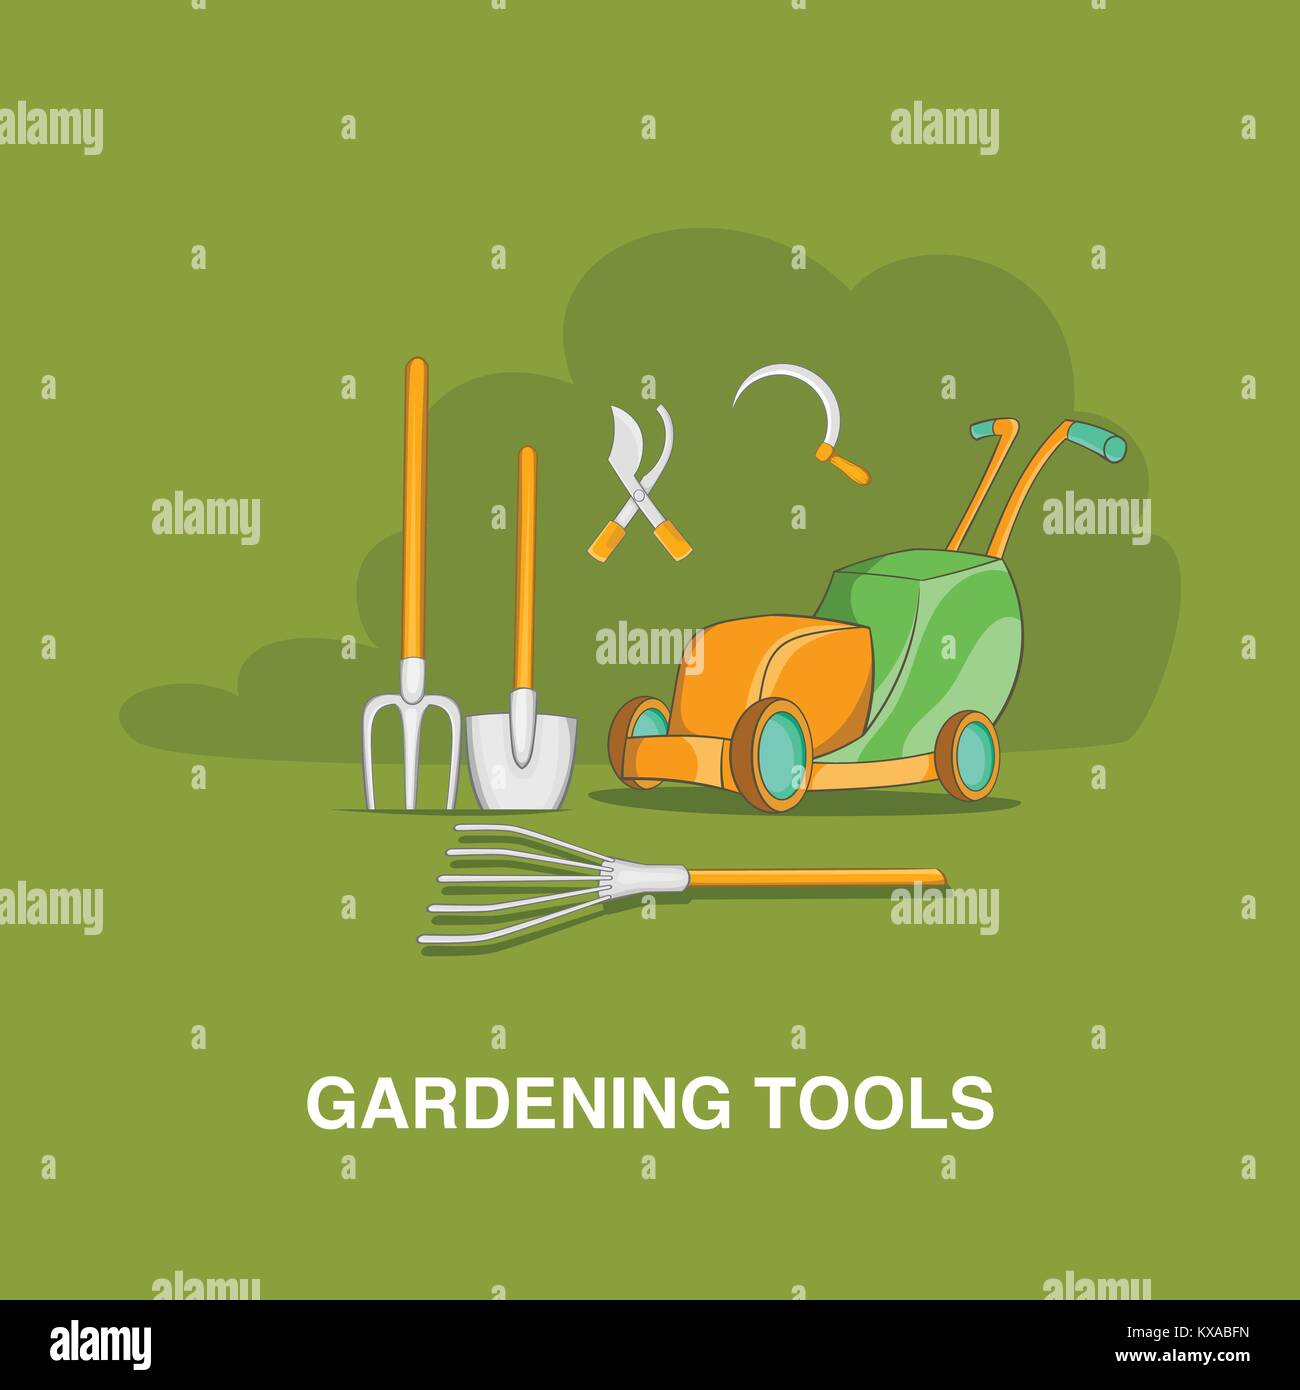 Cartoon mower stock photos cartoon mower stock images for Gardening tools cartoon